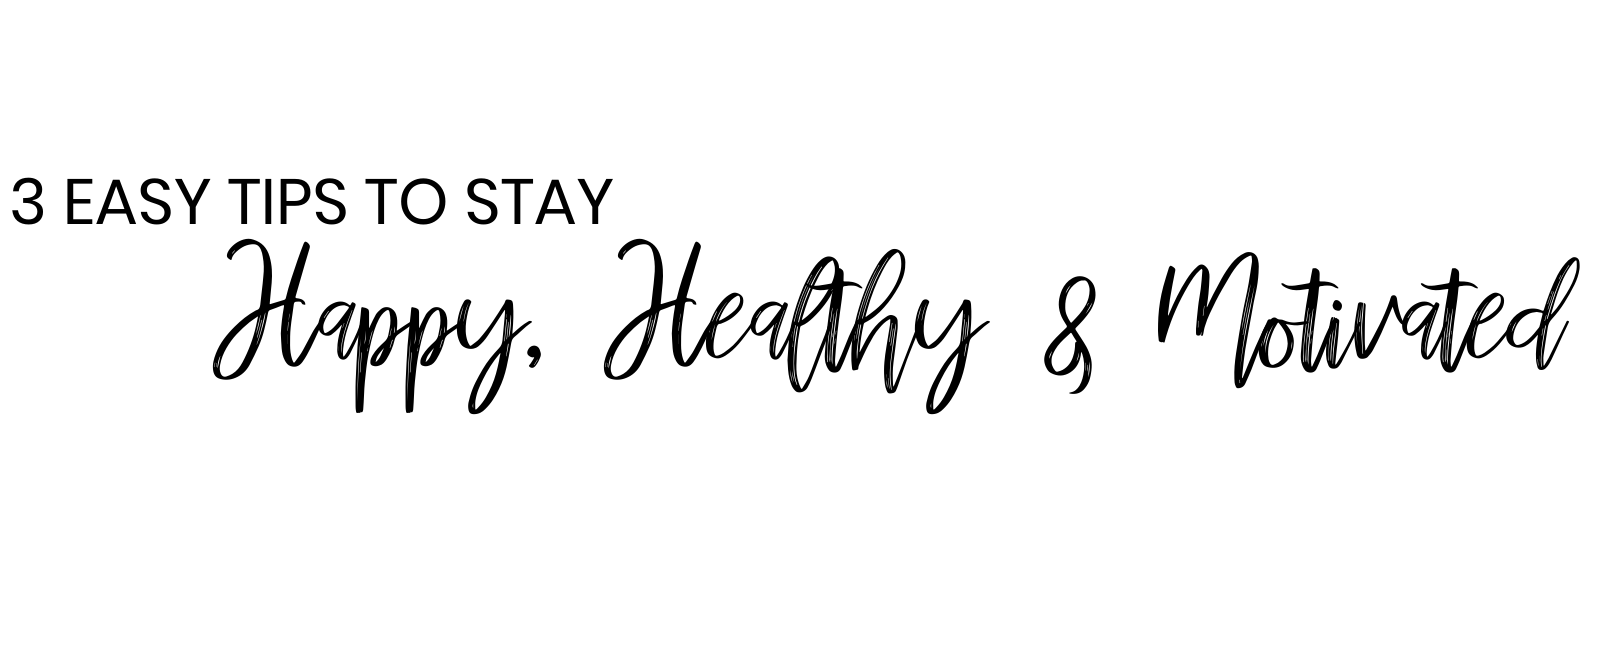 3 Easy Tips to Stay Happy, Healthy & Motivated While at Home